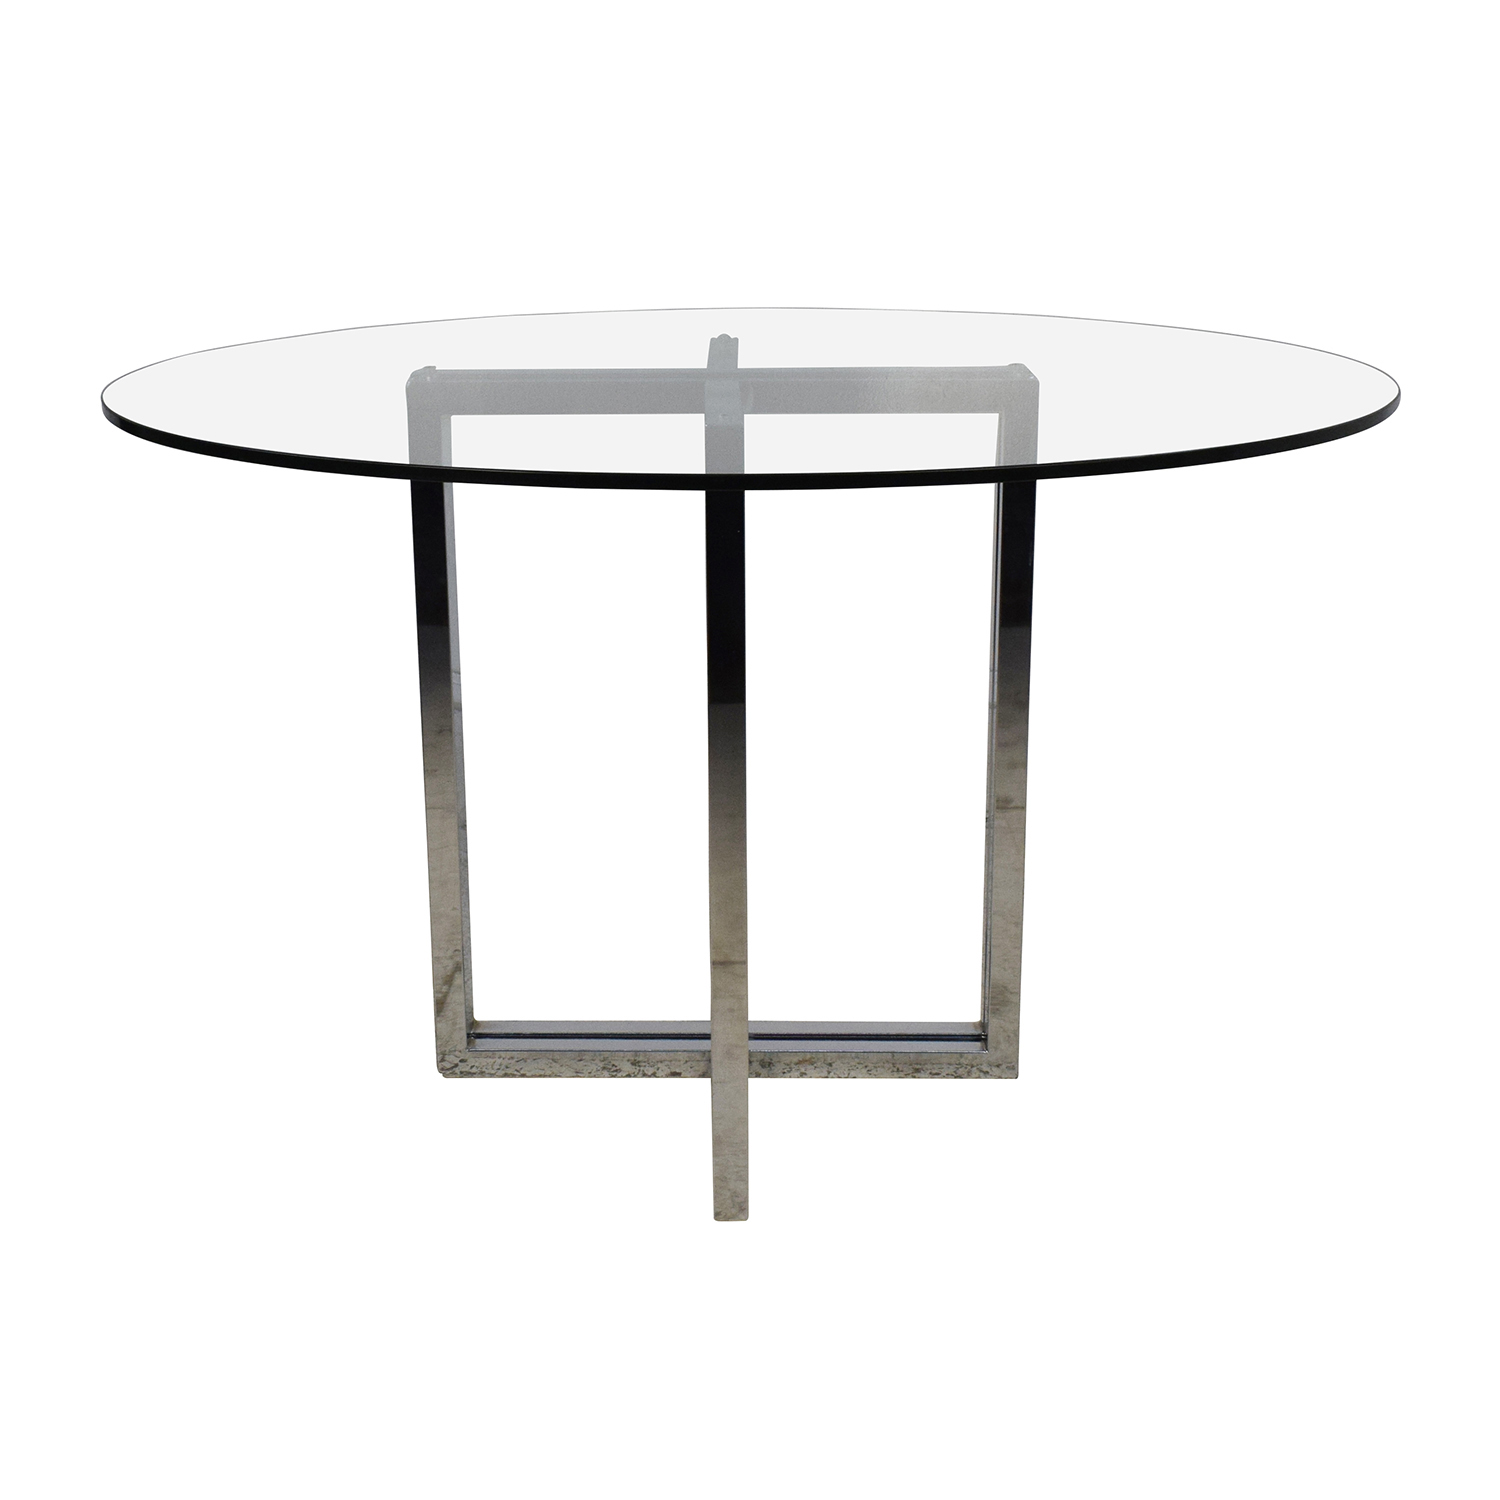 CB2 CB2 Silverado Chrome Round Dining Table second hand